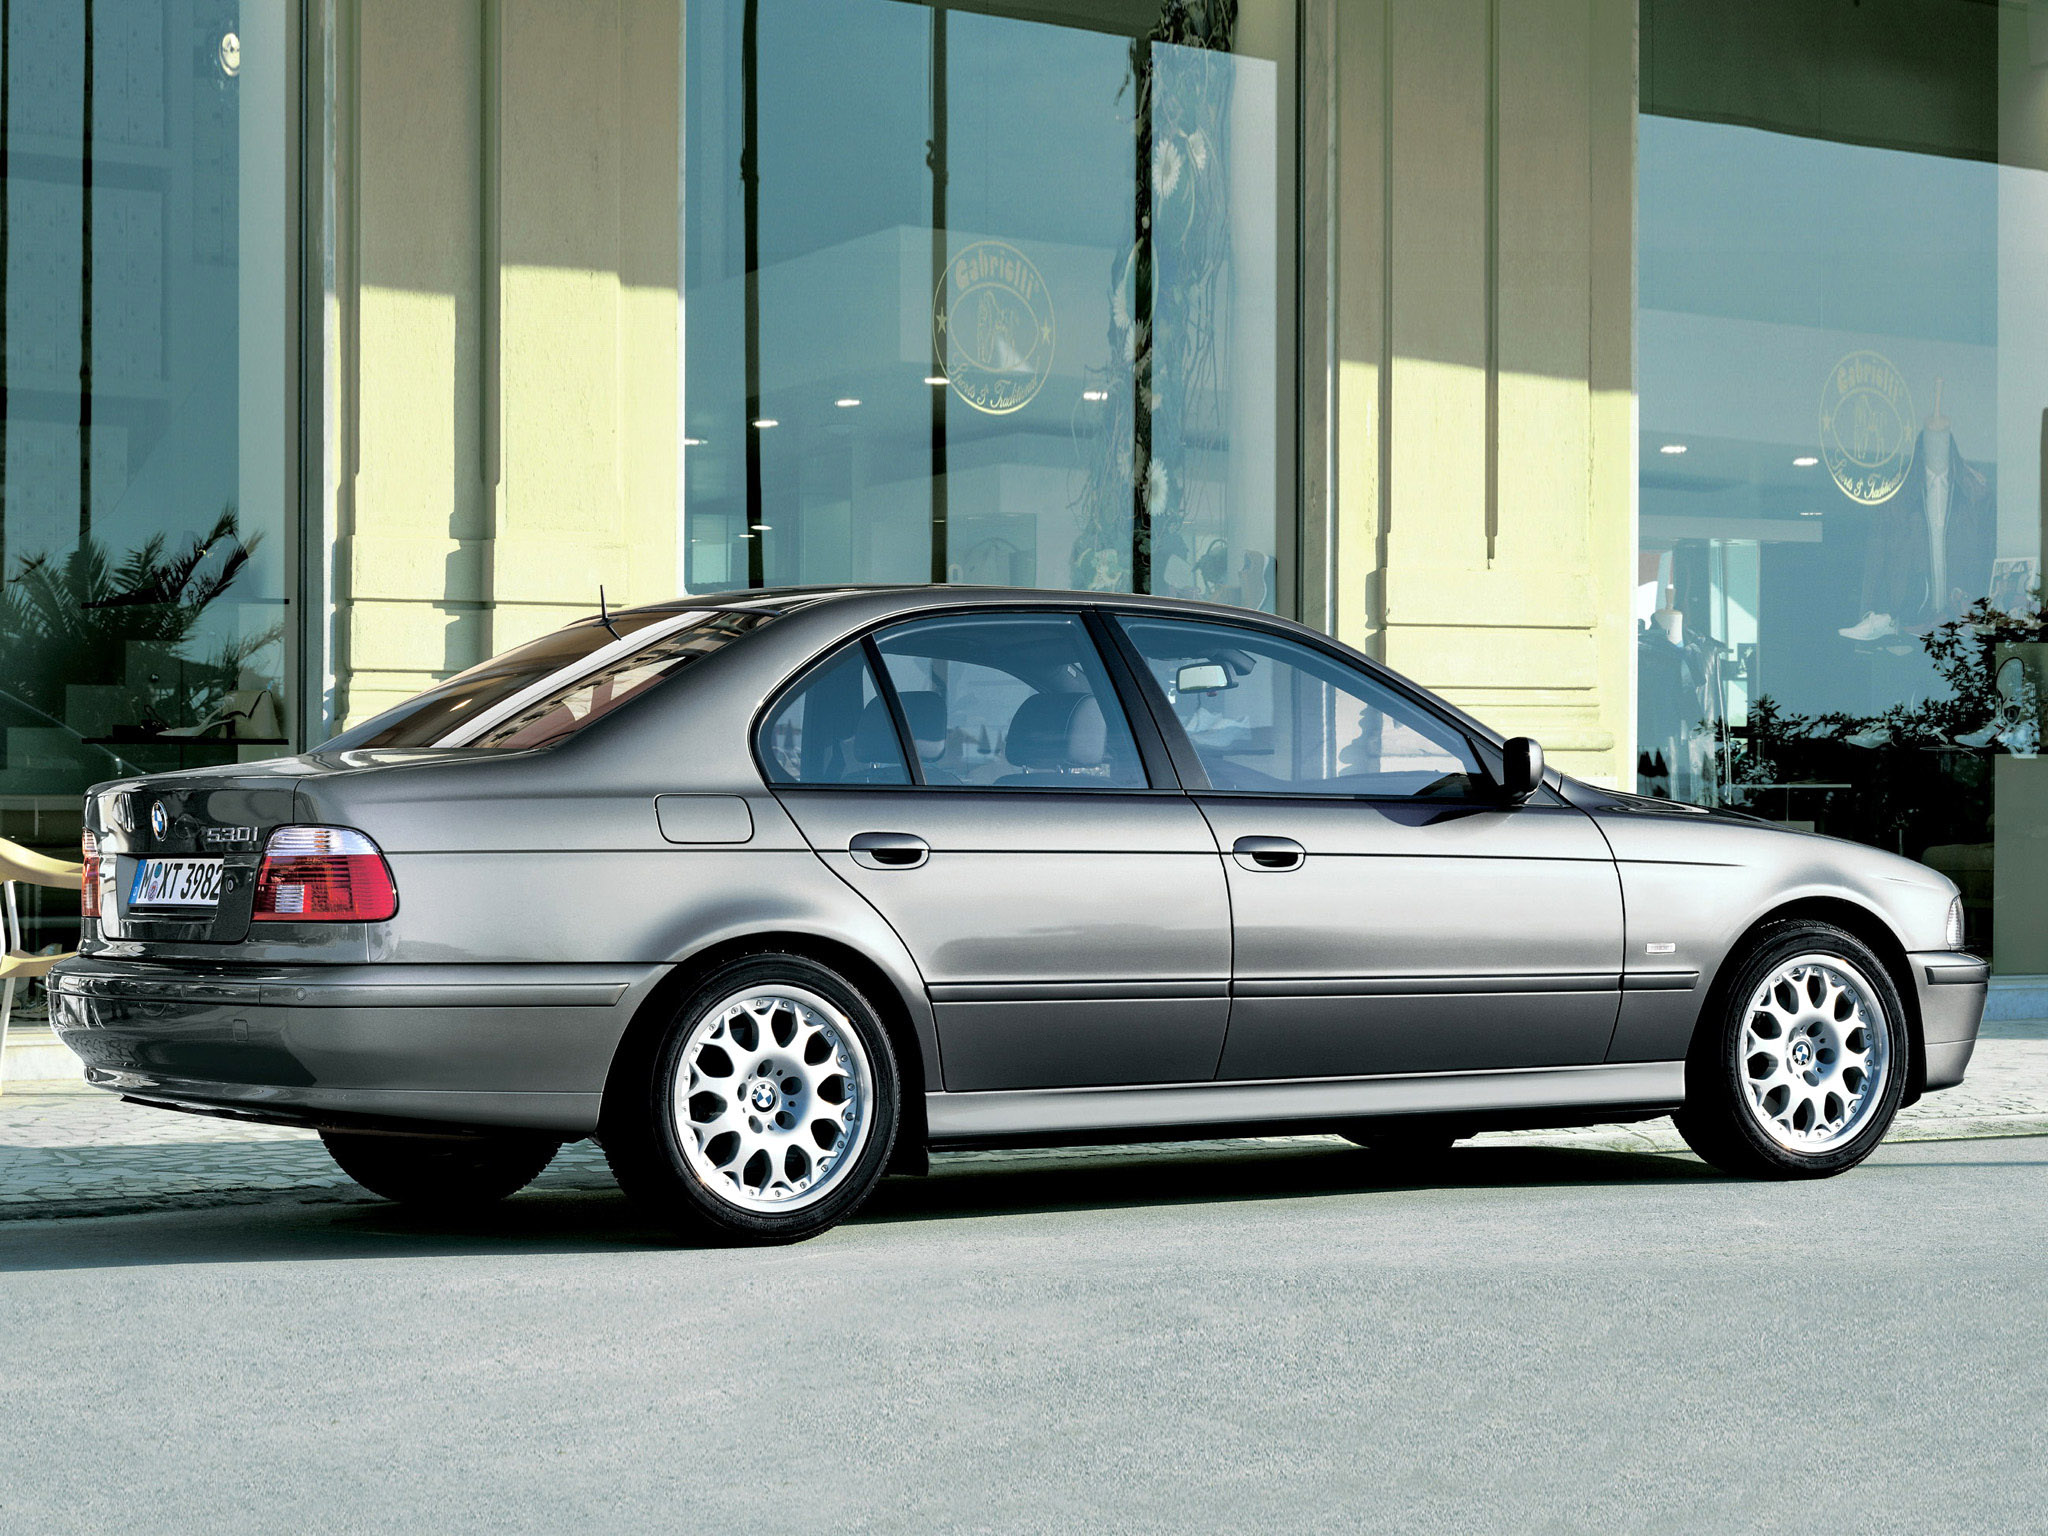 BMW 5 series 530i 2000 photo - 5